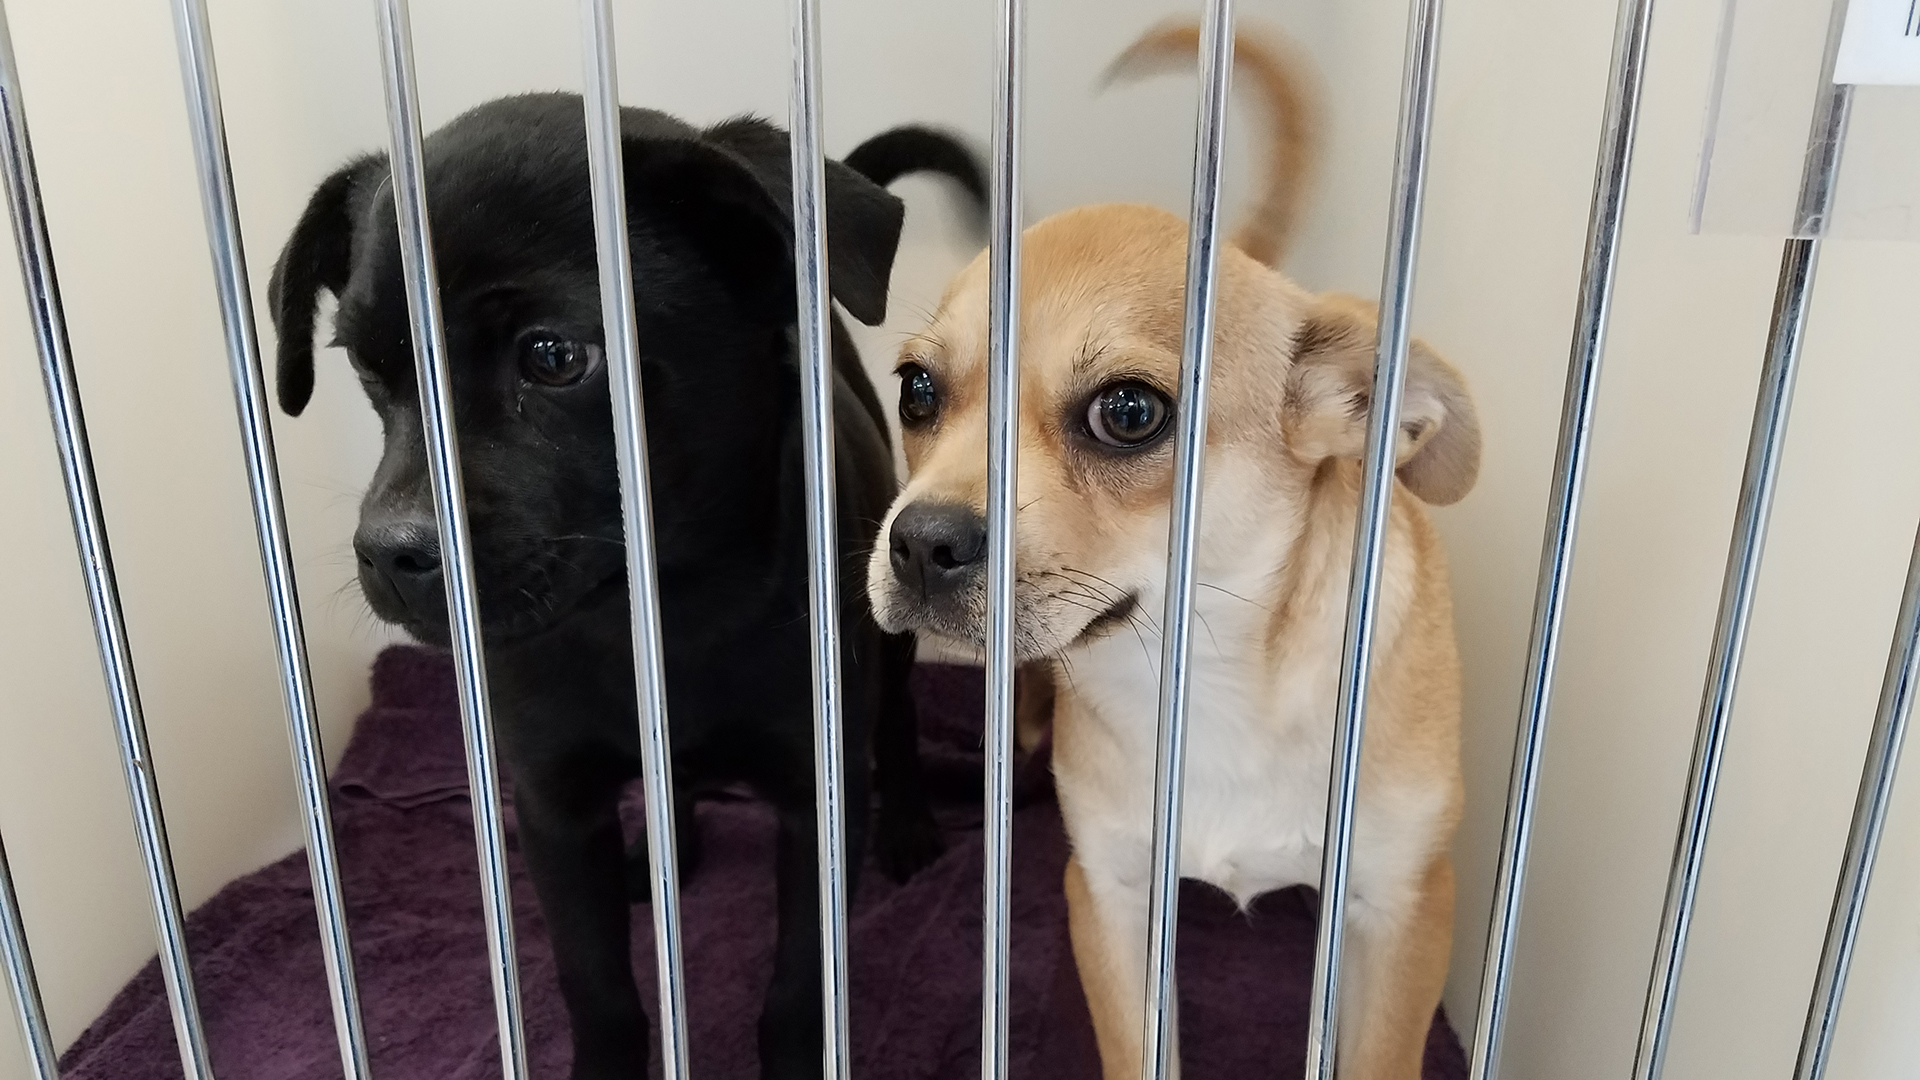 Two puppies housed in the small dogs unit of the new Pima Animal Care Center.